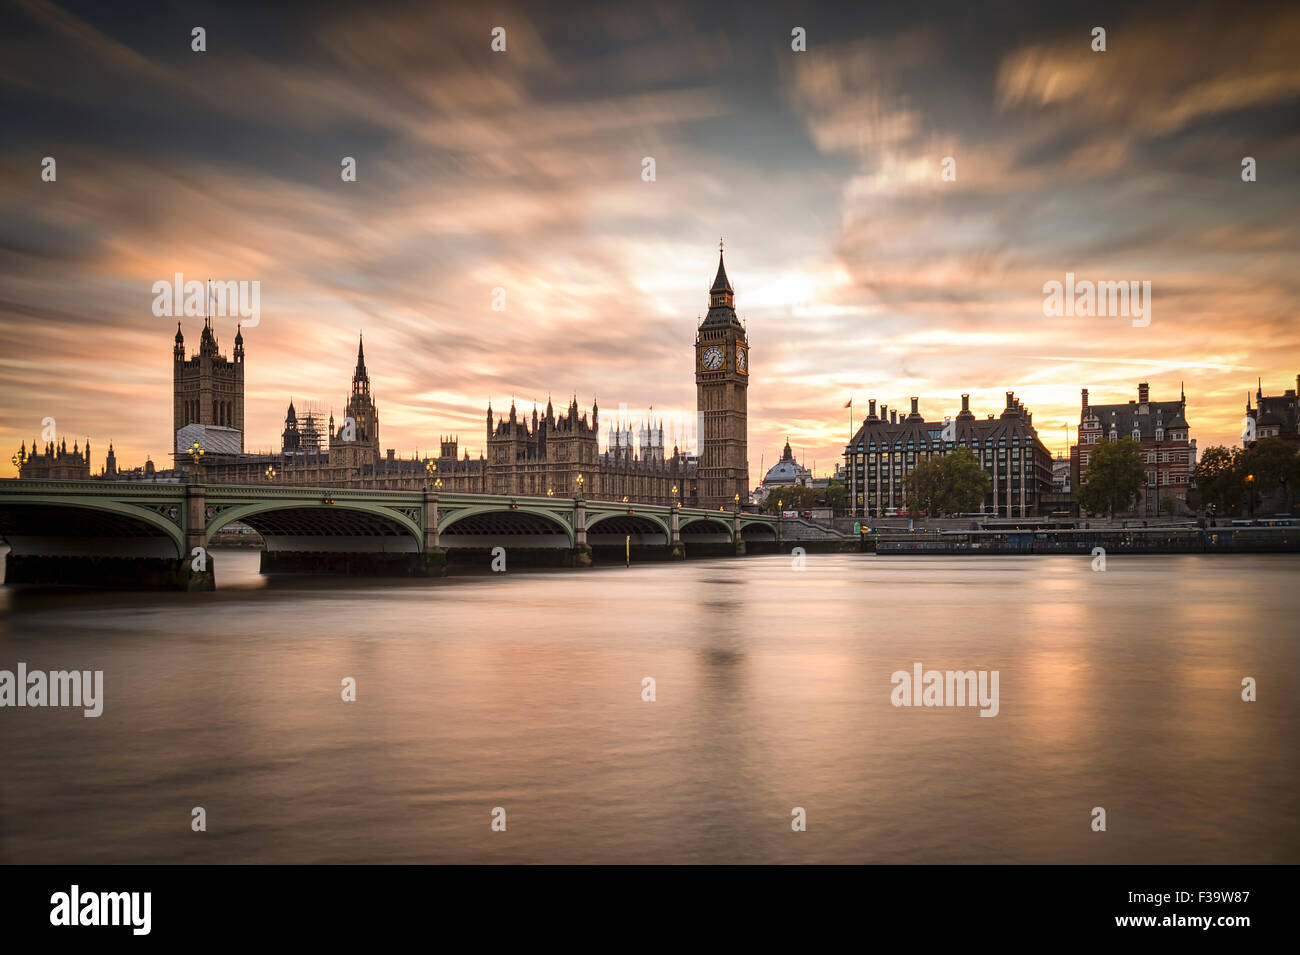 Big ben and Westminster Bridge in London at dusk. - Stock Image